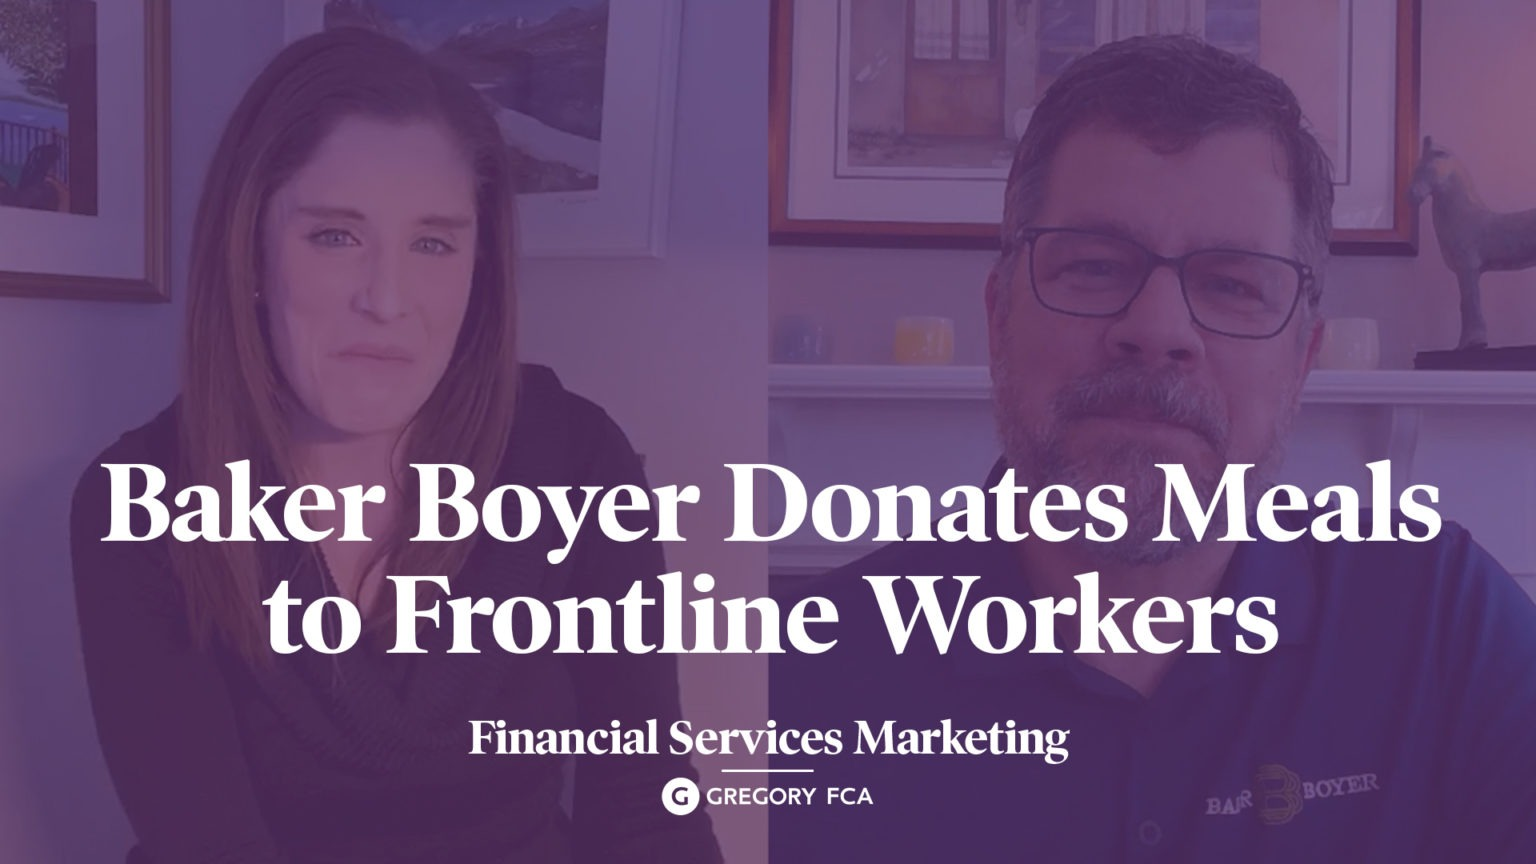 Green Shoots: Baker Boyer donates meals to frontline workers